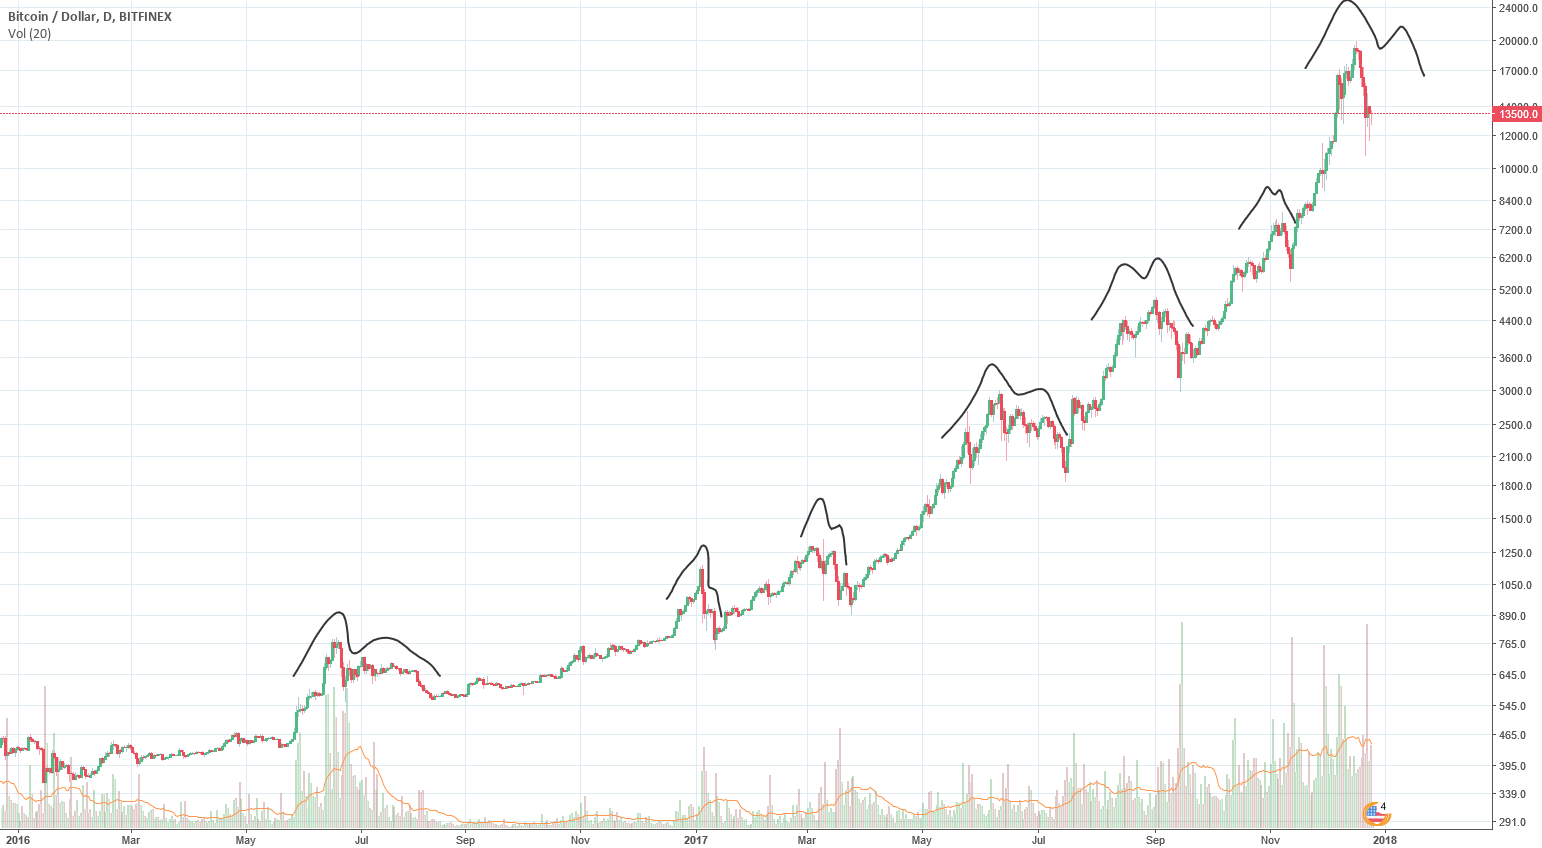 BTC correction is over? History speaks: More correction to come